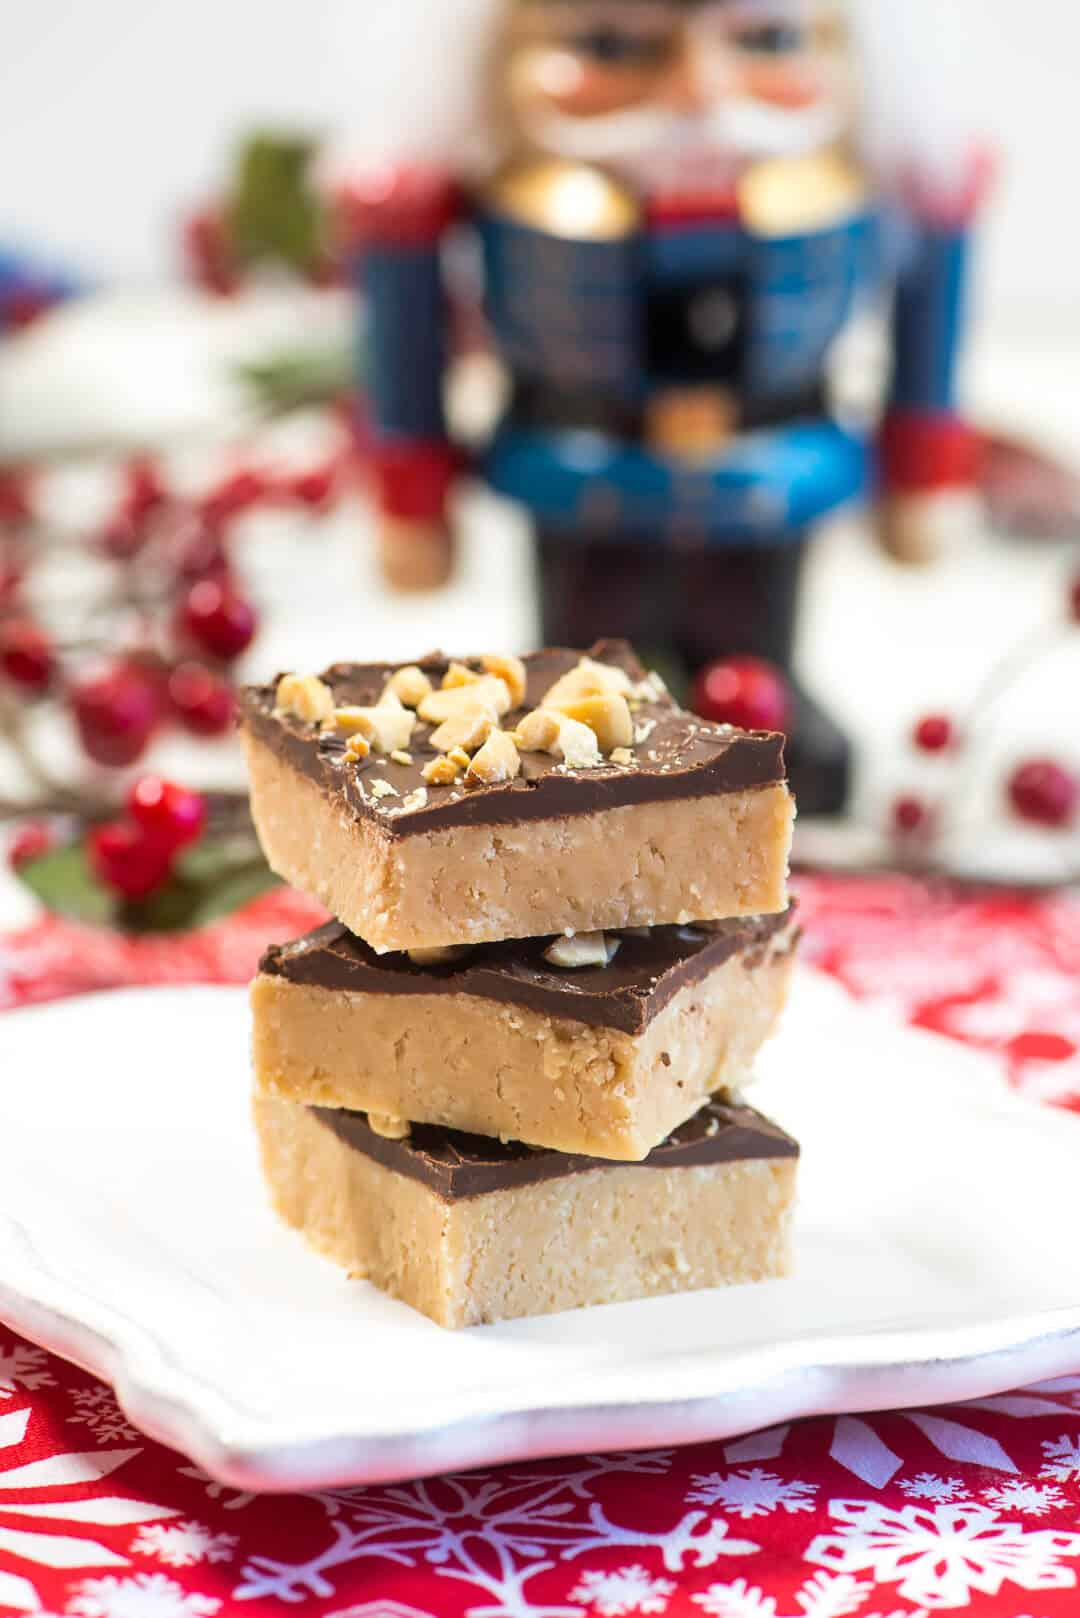 This old-fashioned Peanut Butter Soda Cracker Fudge is easy to make and will be a deliciously unique addition to your holiday baking.